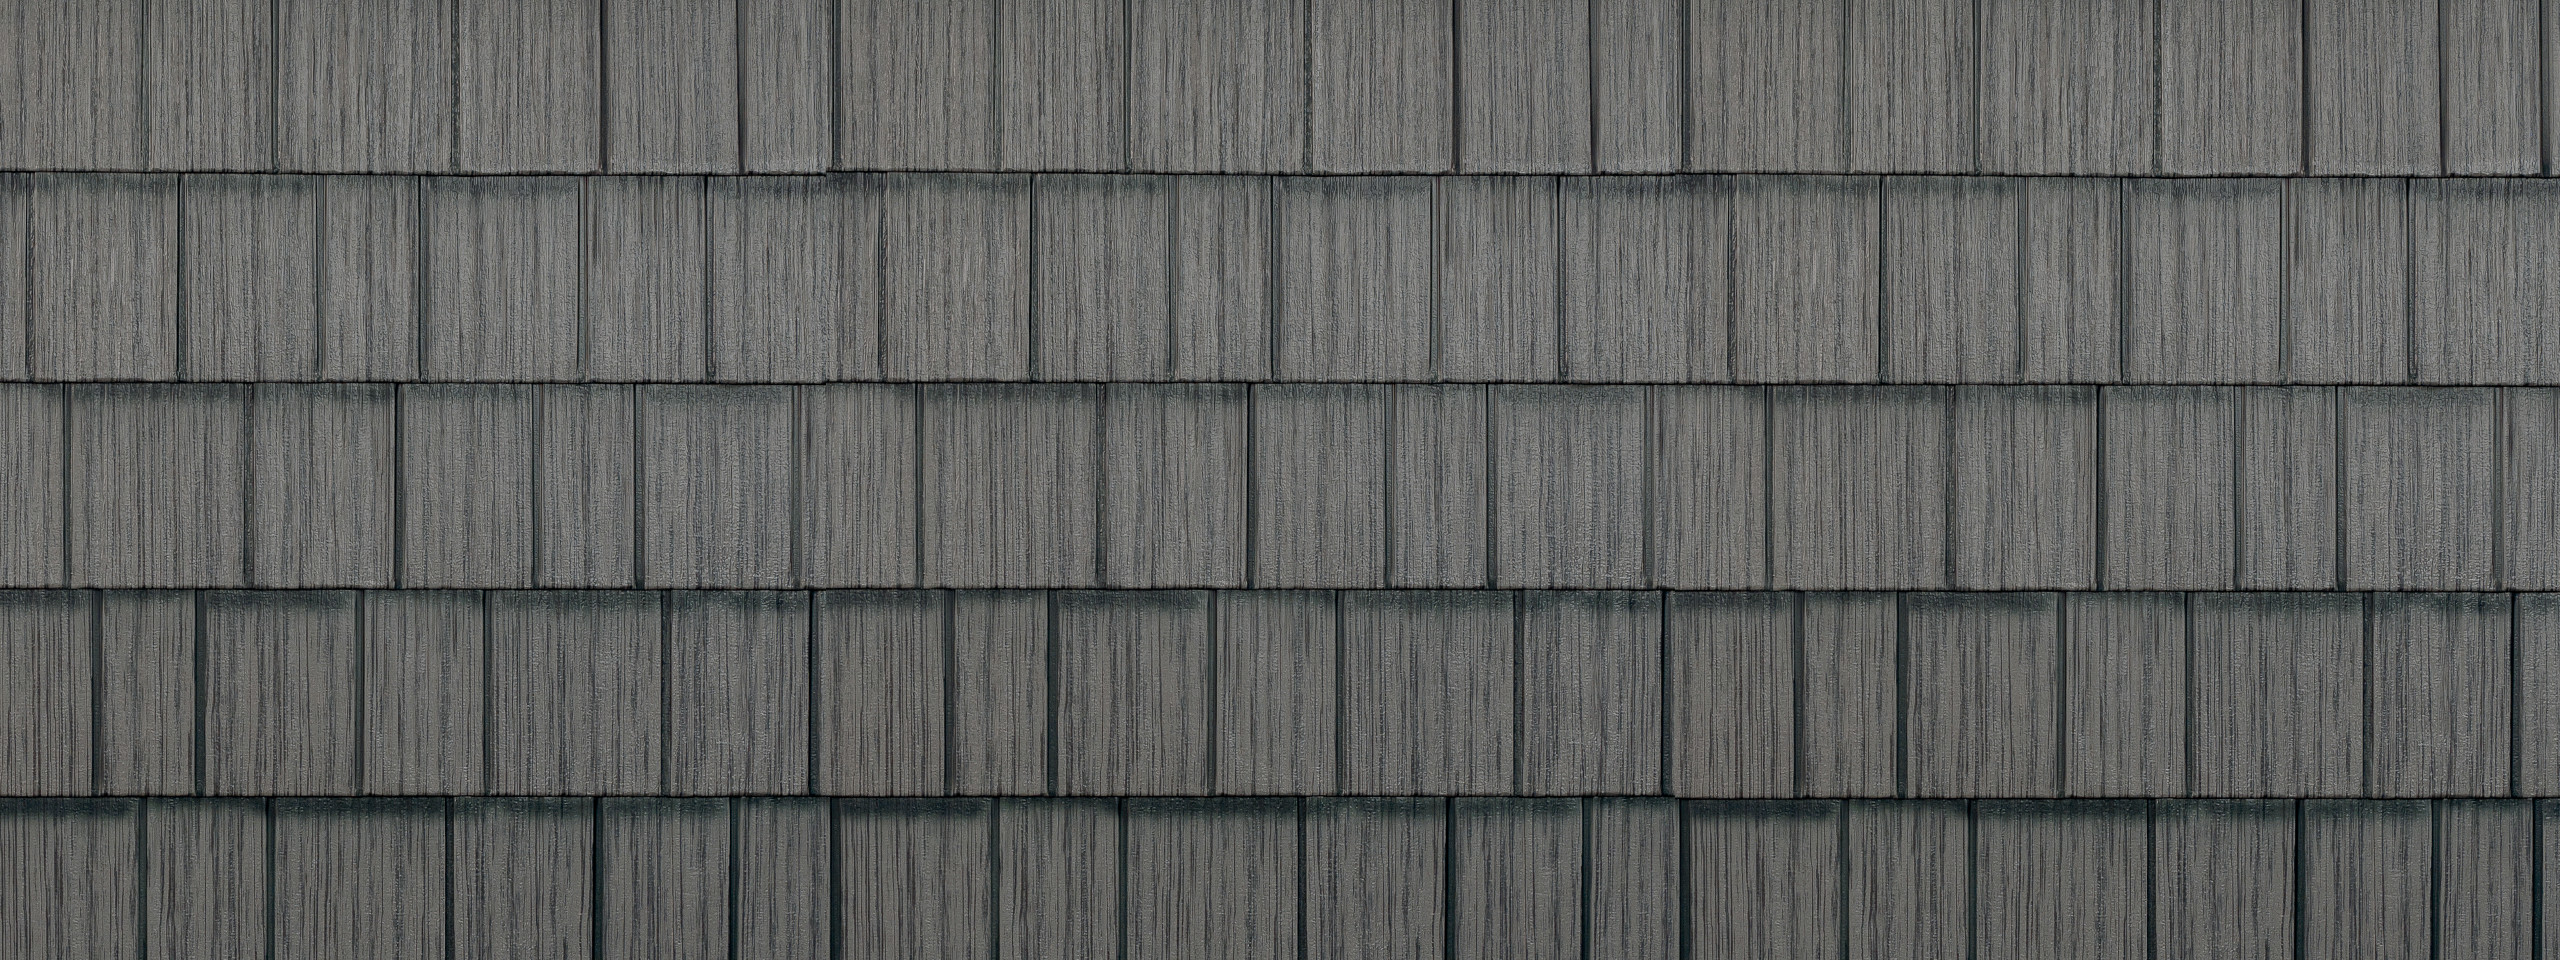 Charcoal gray/grey generations hd shake steel roofing